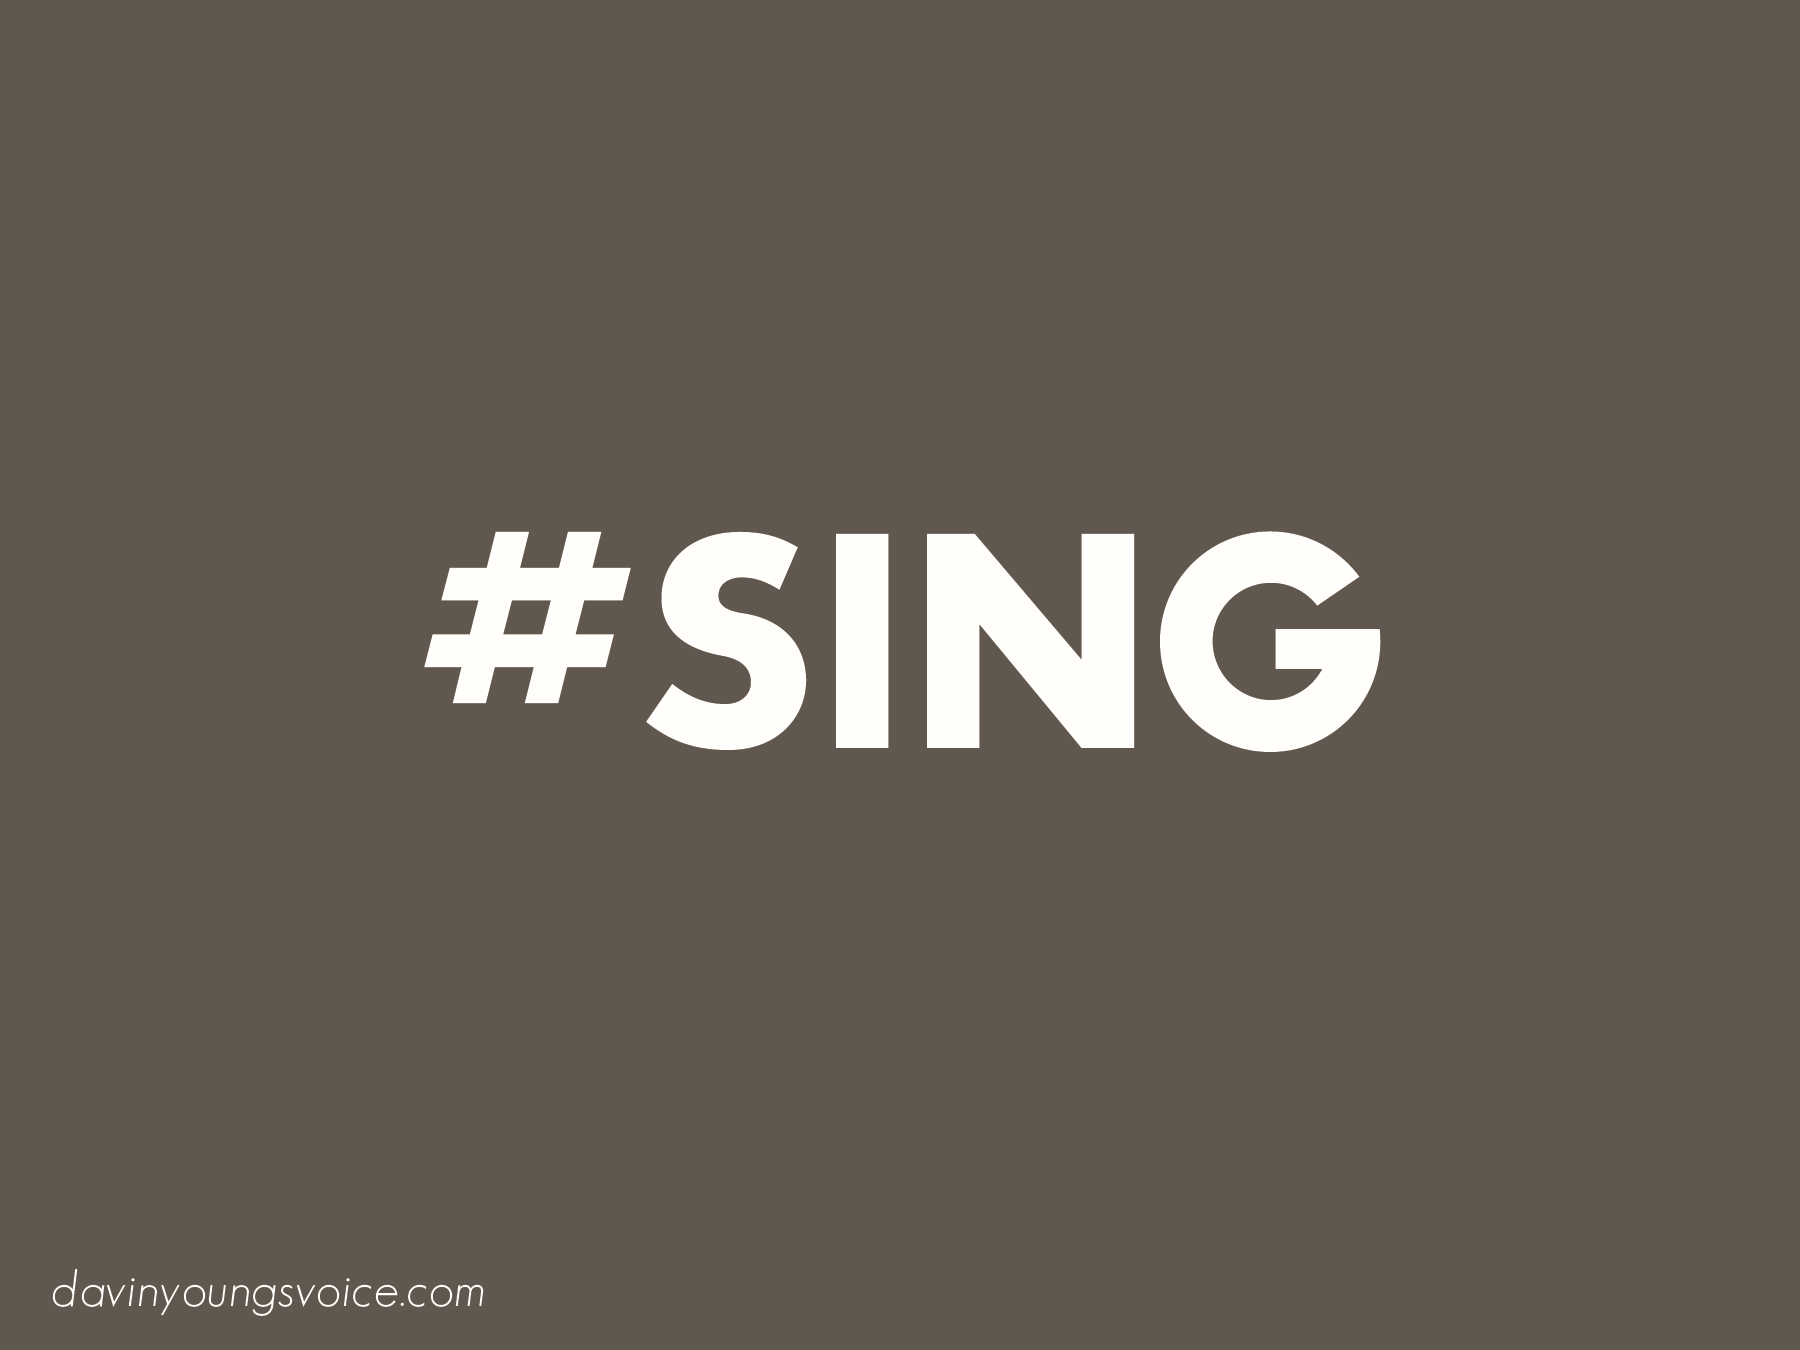 Is singing trending in your life? #SING